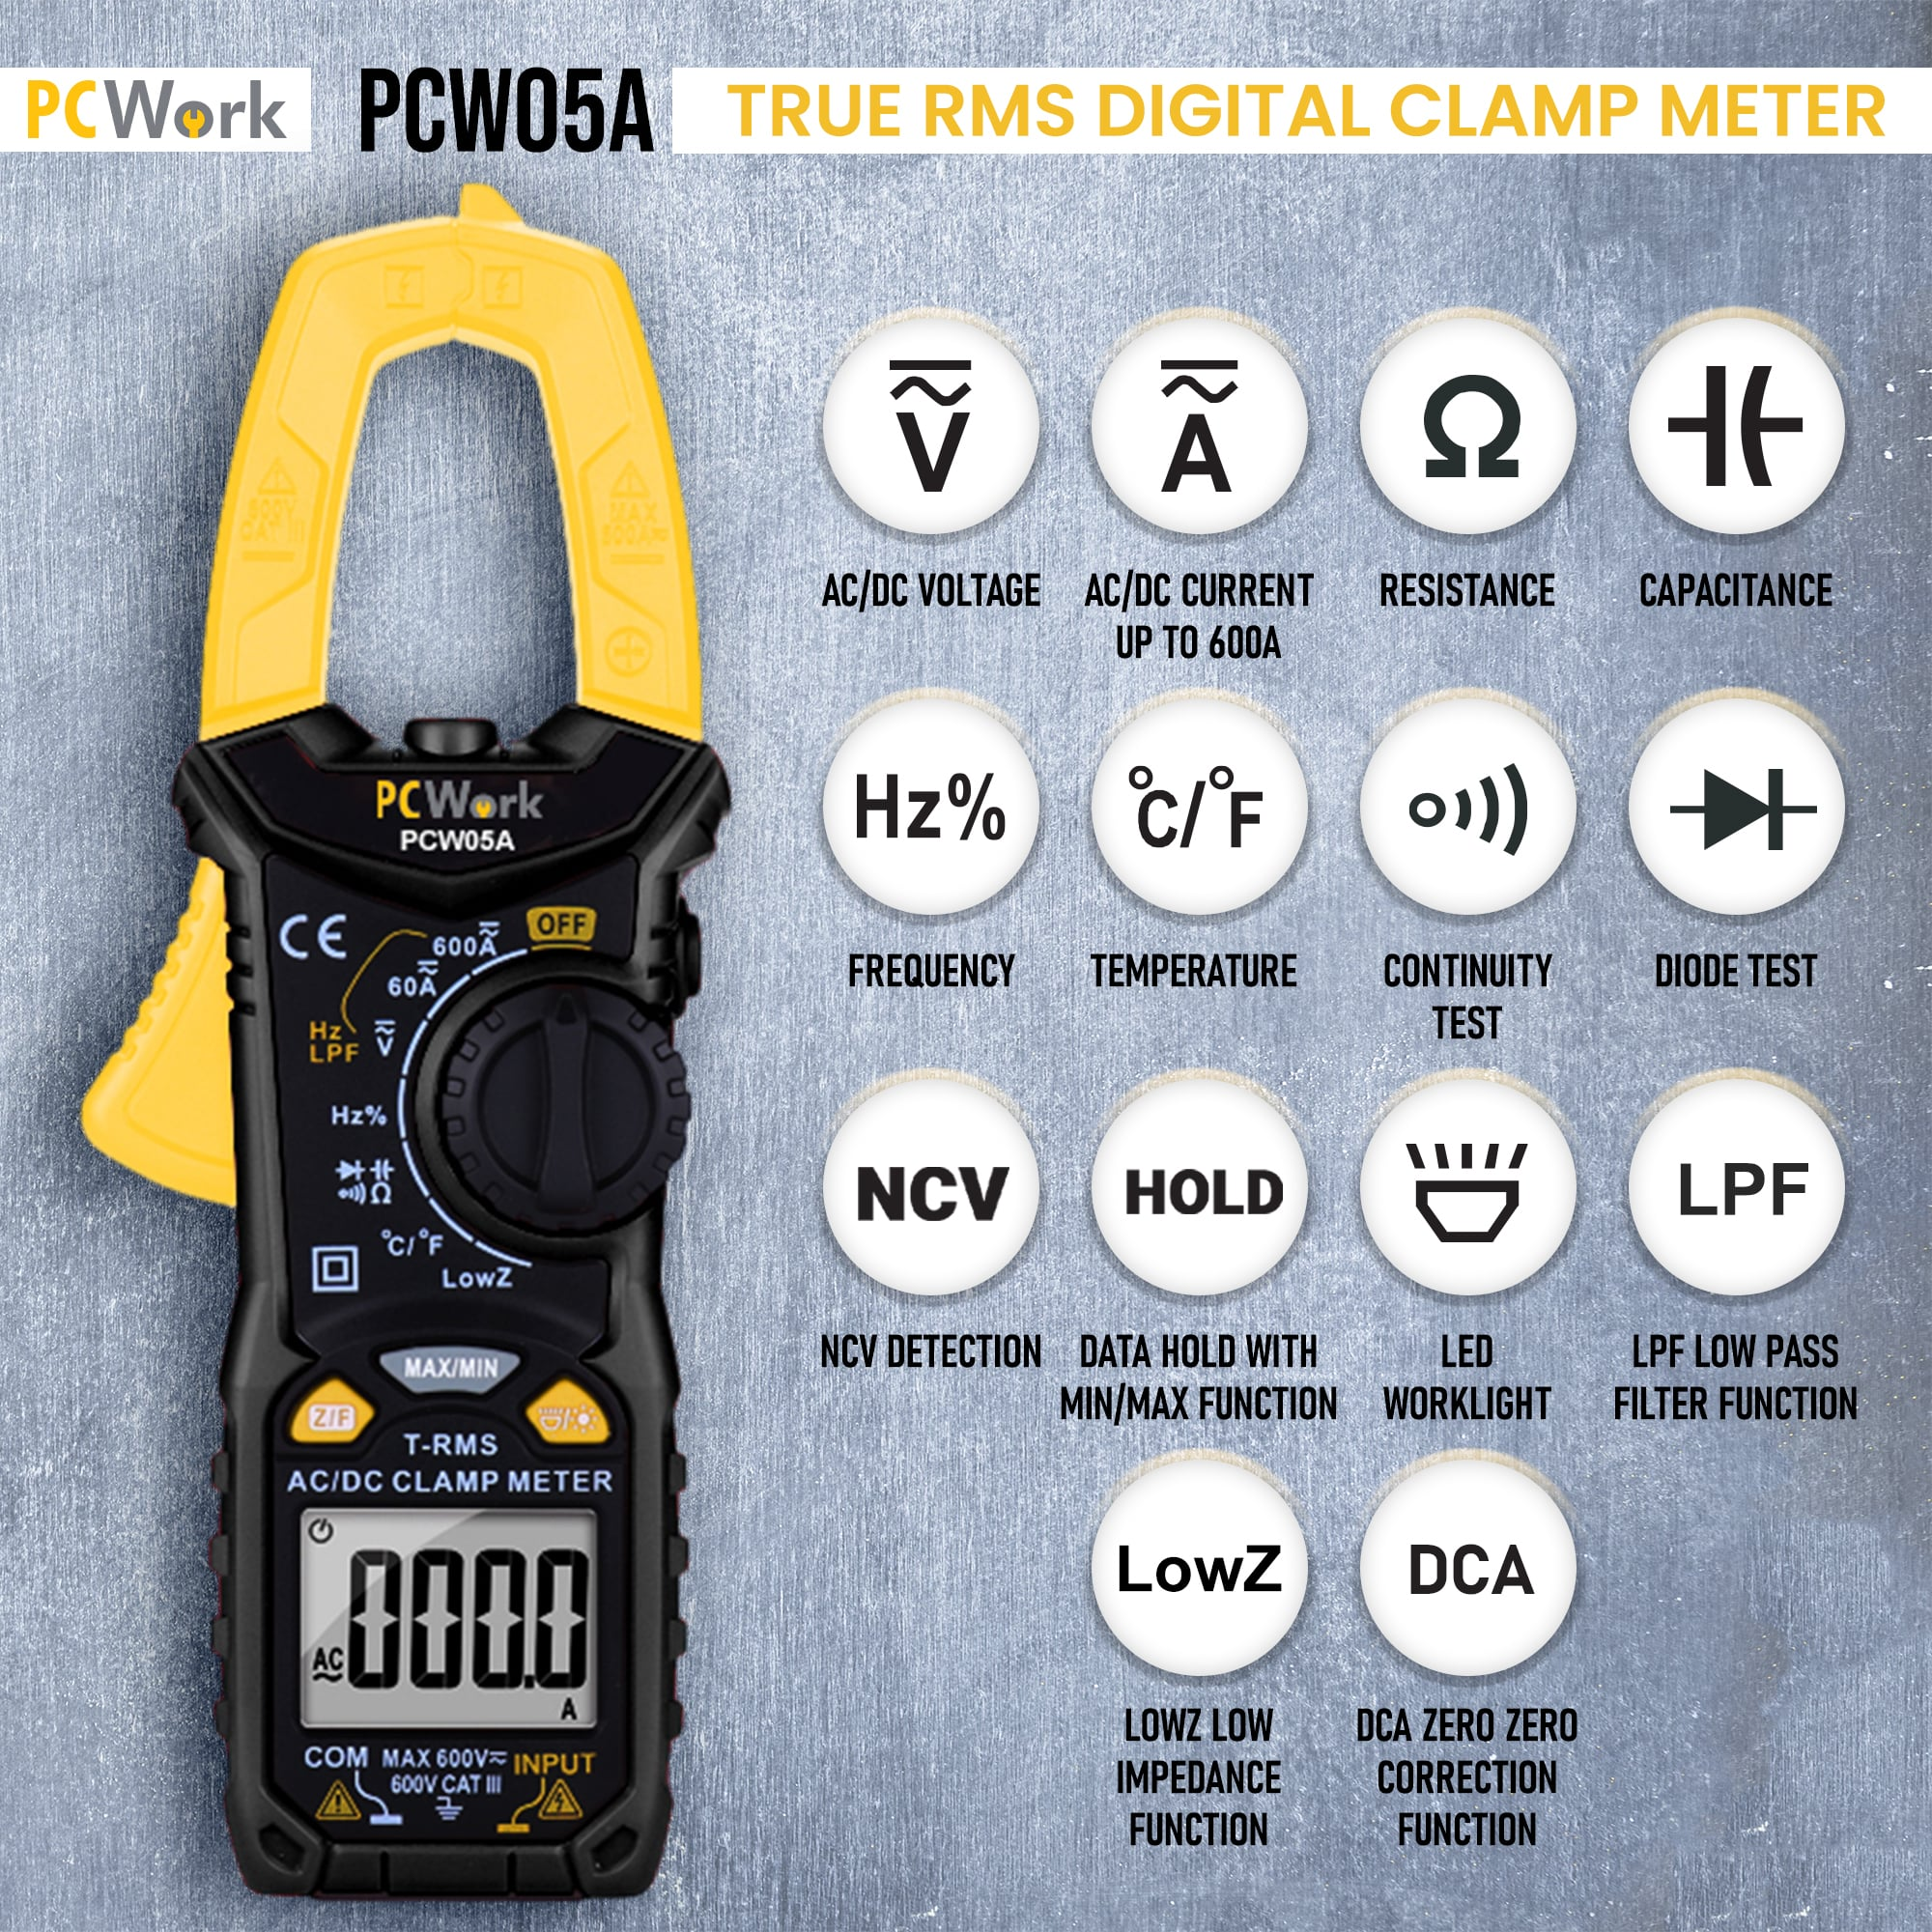 pcw05a digital clamp meter features and functions